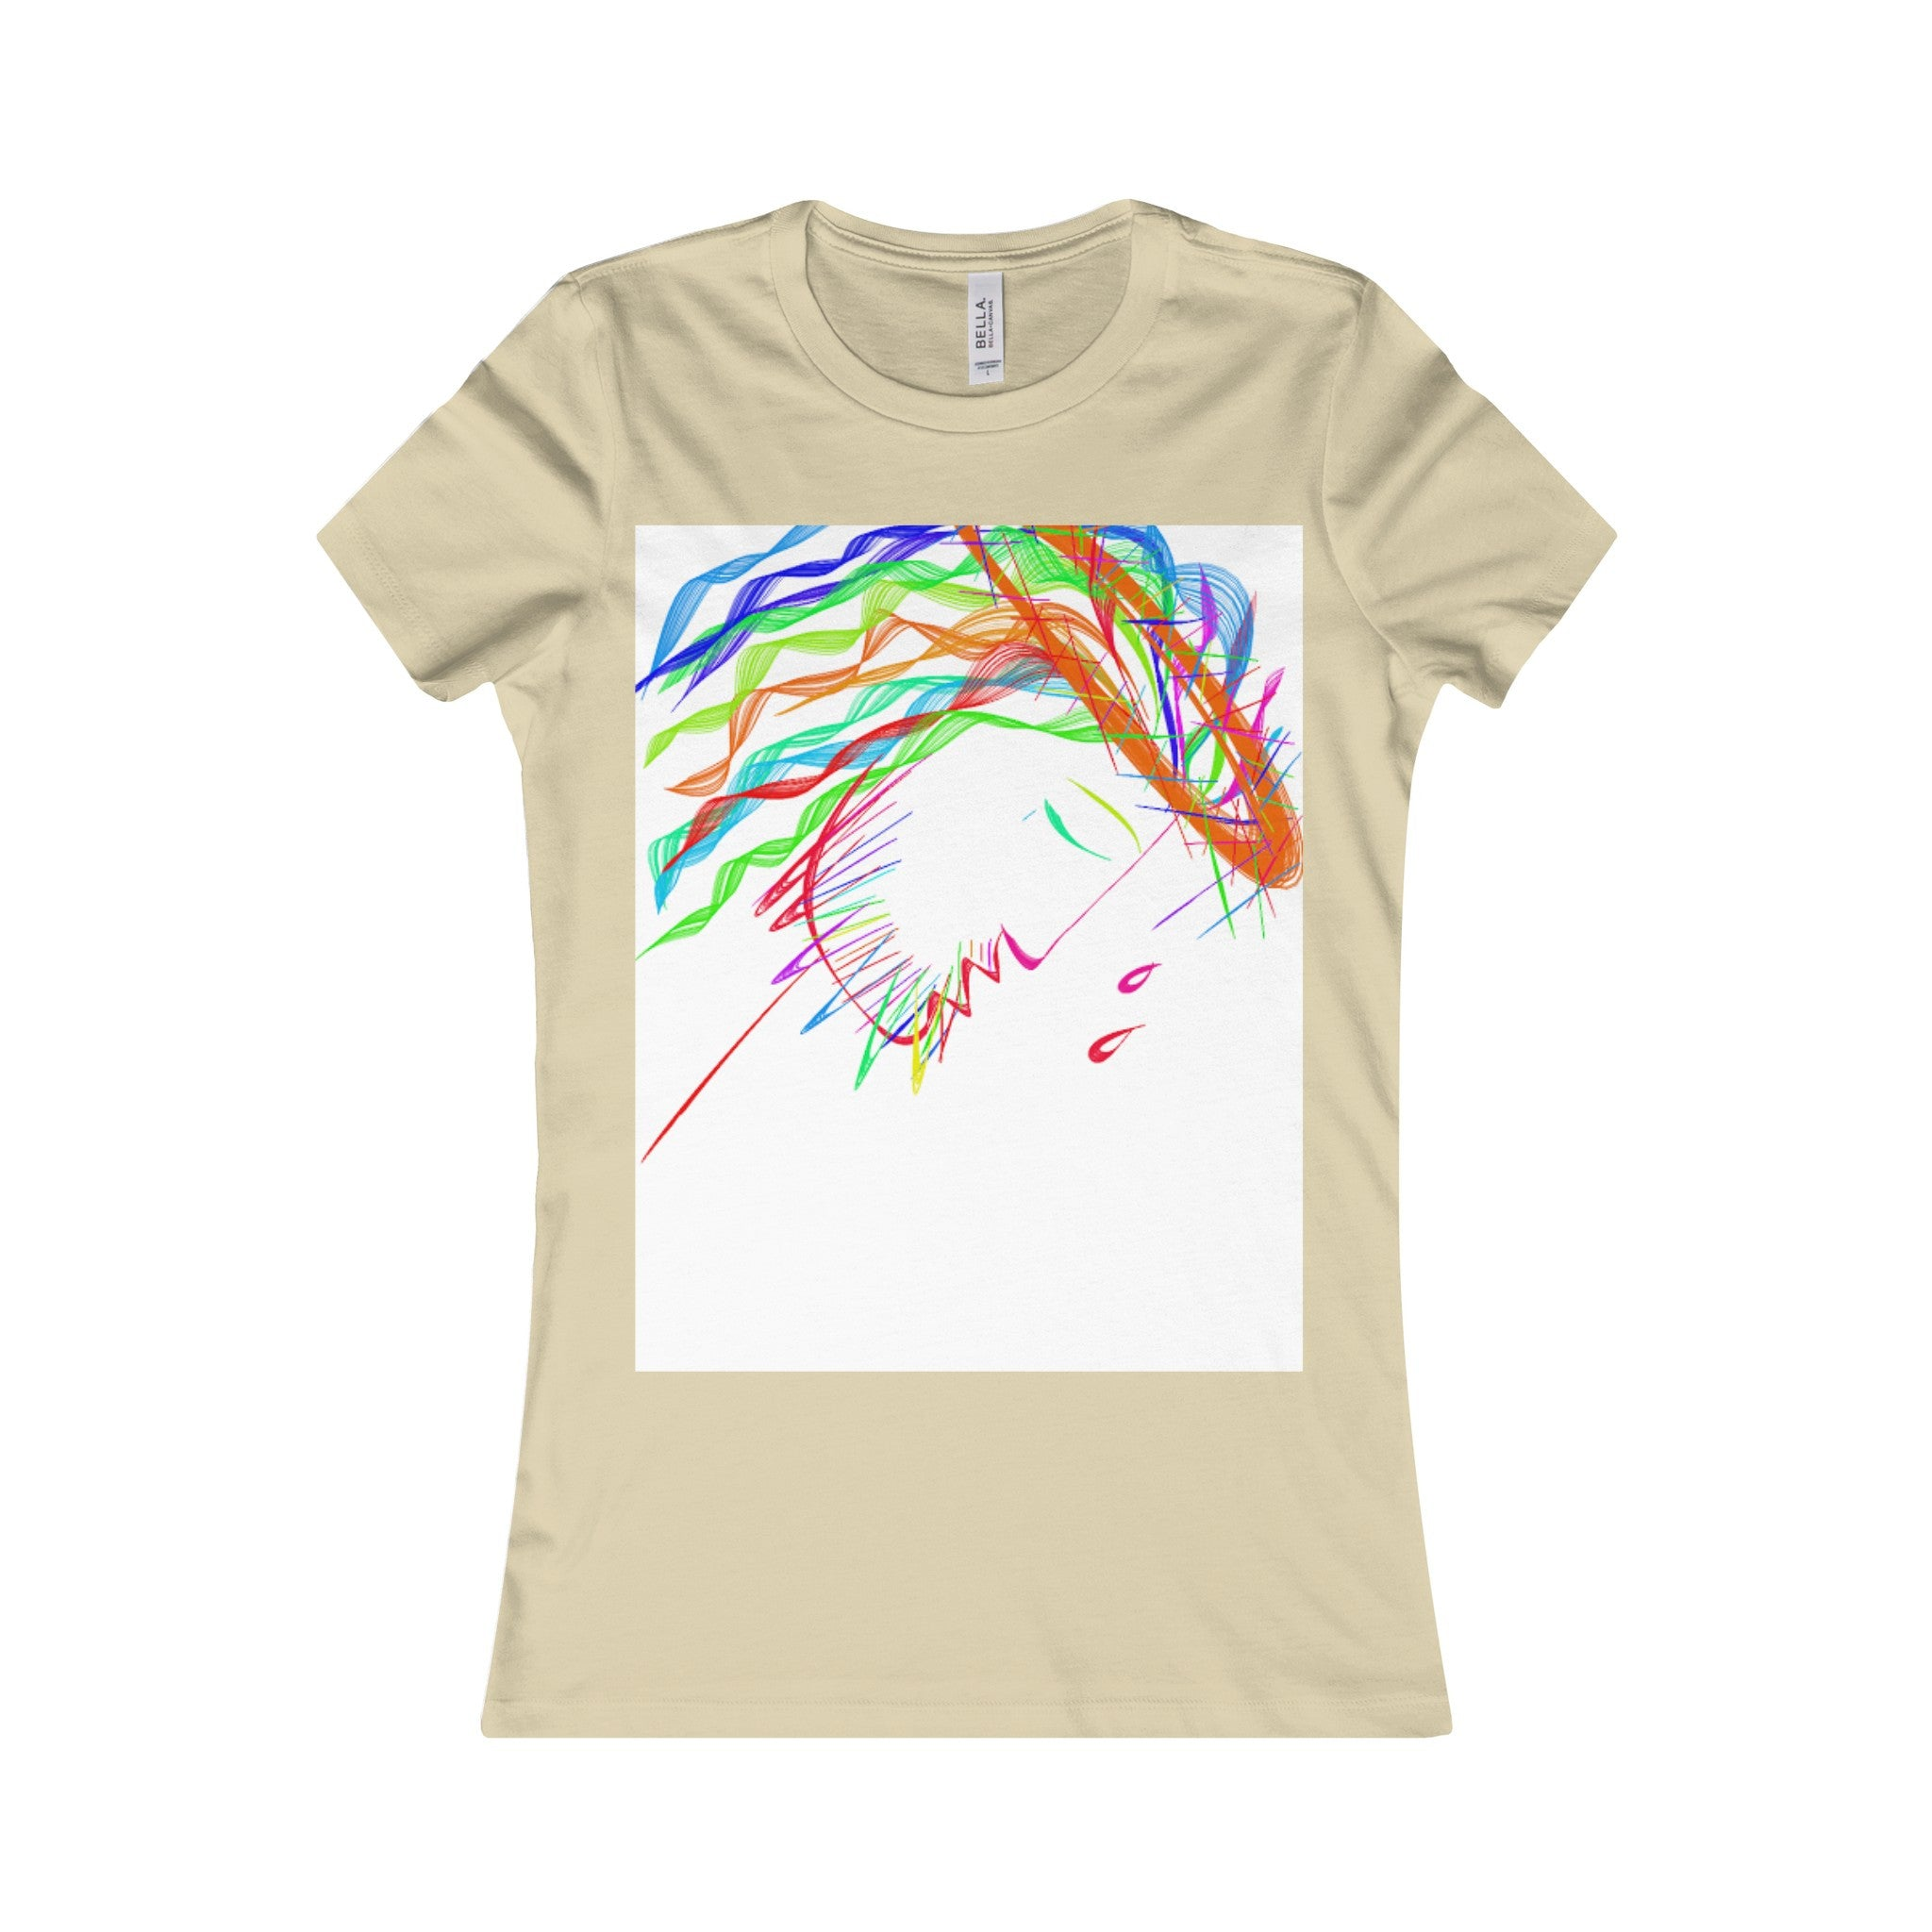 Women's Favorite Tee-T-Shirt-Printify-Soft Cream-S-Love My Husband Shop